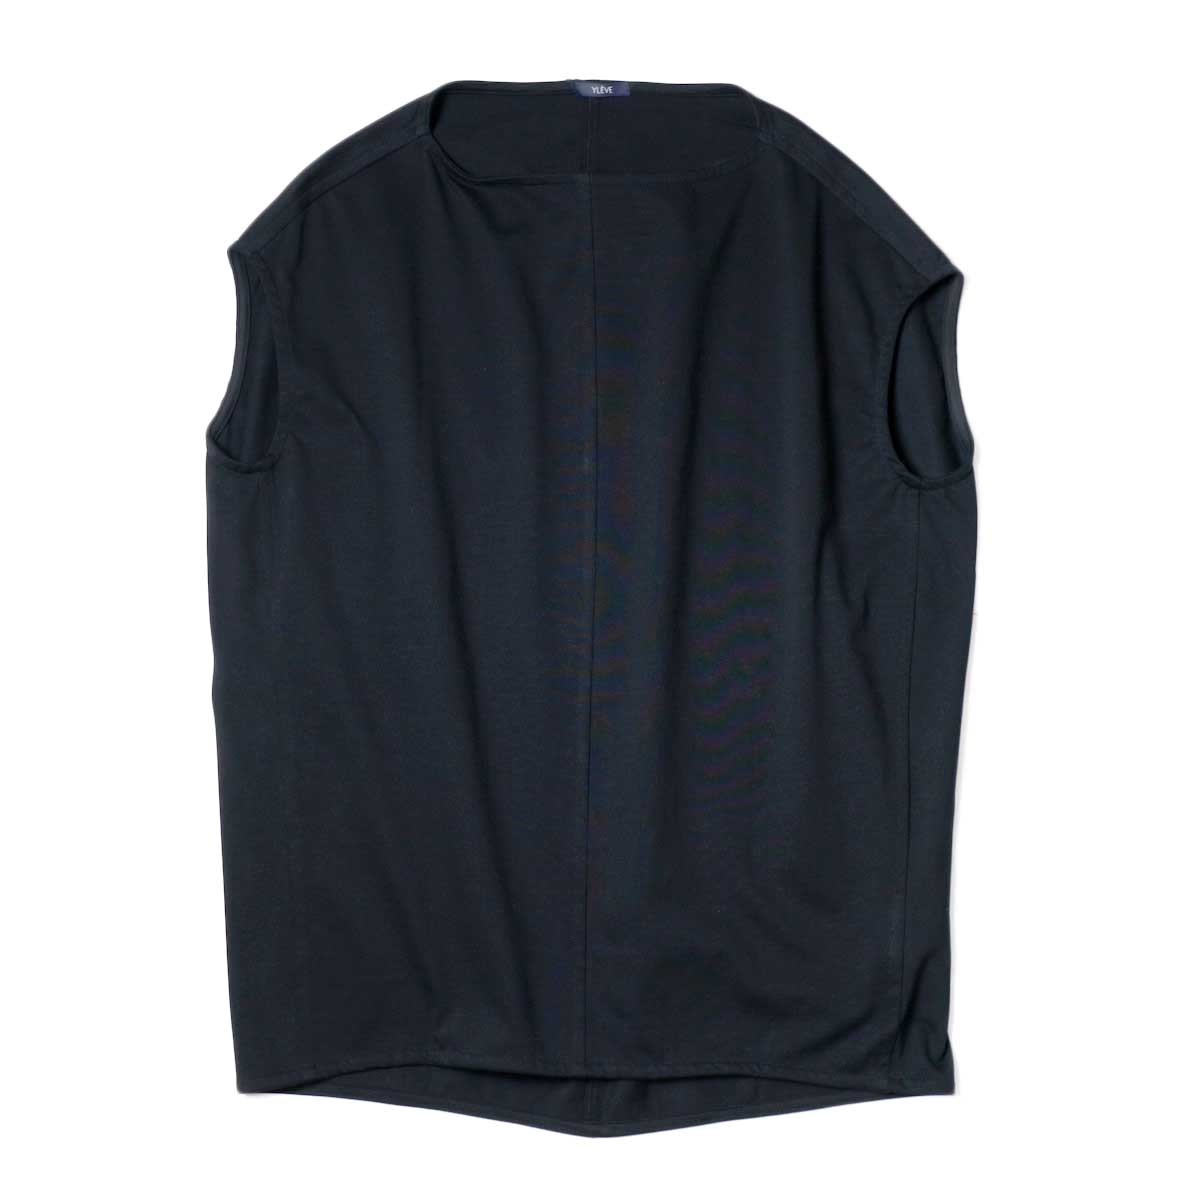 YLEVE / ORGANIC COTTON HIGH COUNT JERSEY N/S P/O (Black)